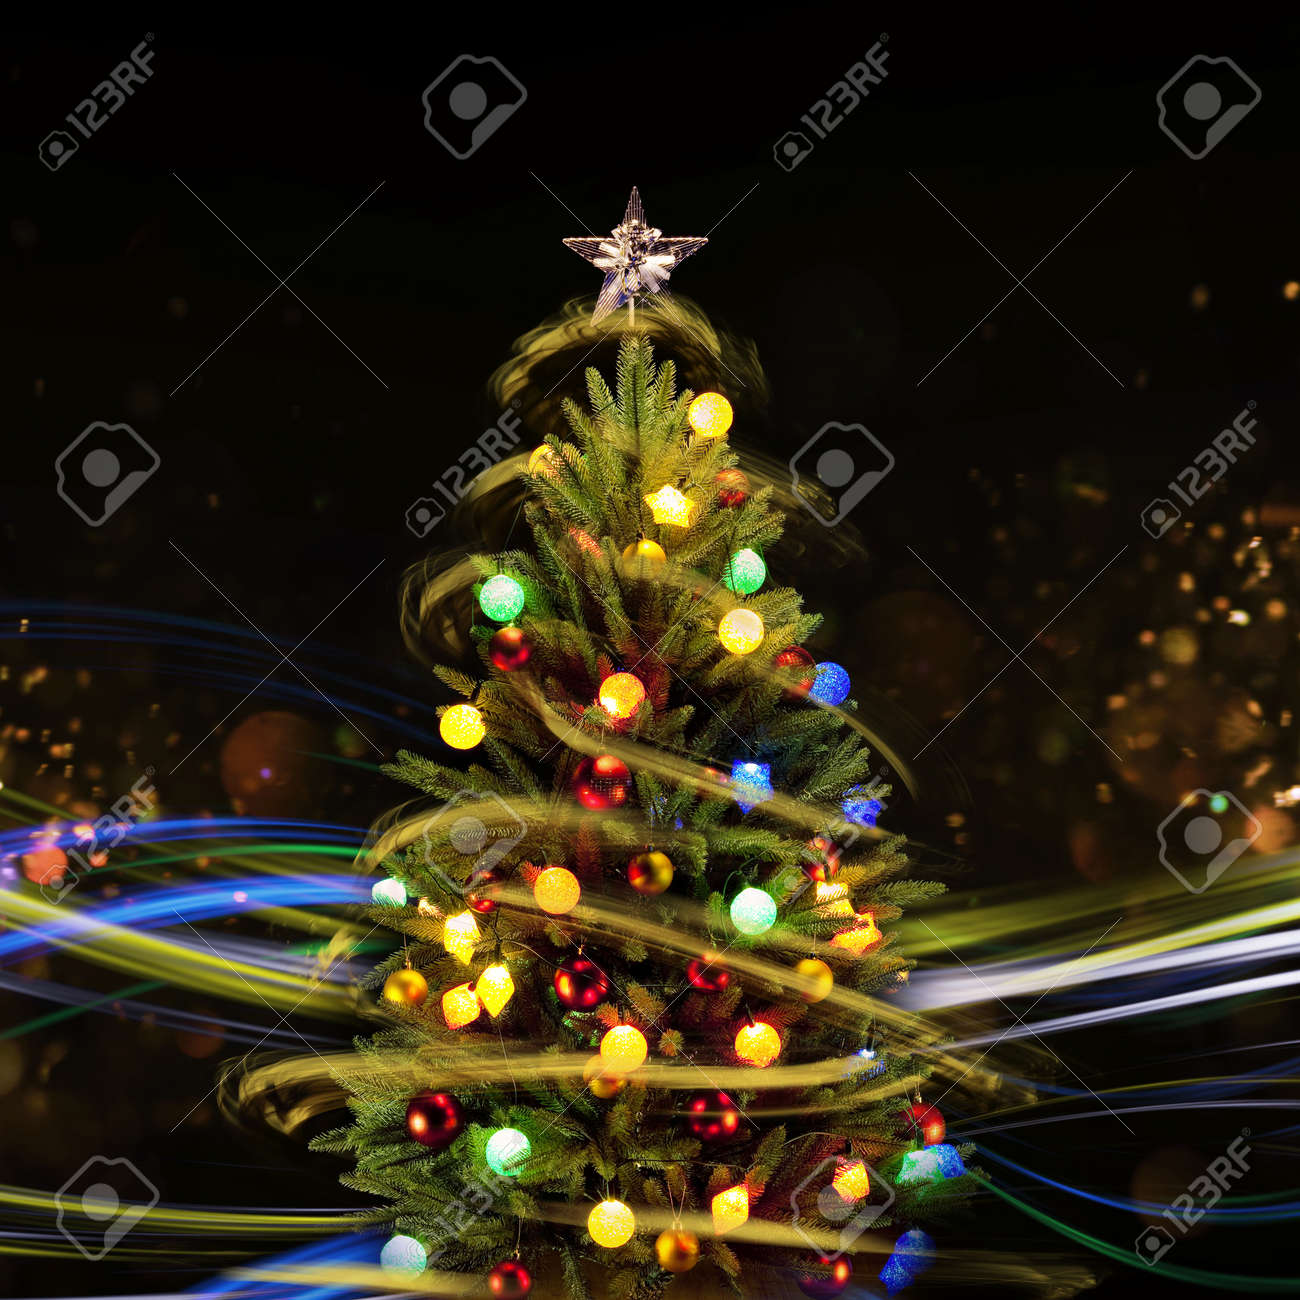 snow covered christmas tree with multi colored lights at night stock photo 66279283